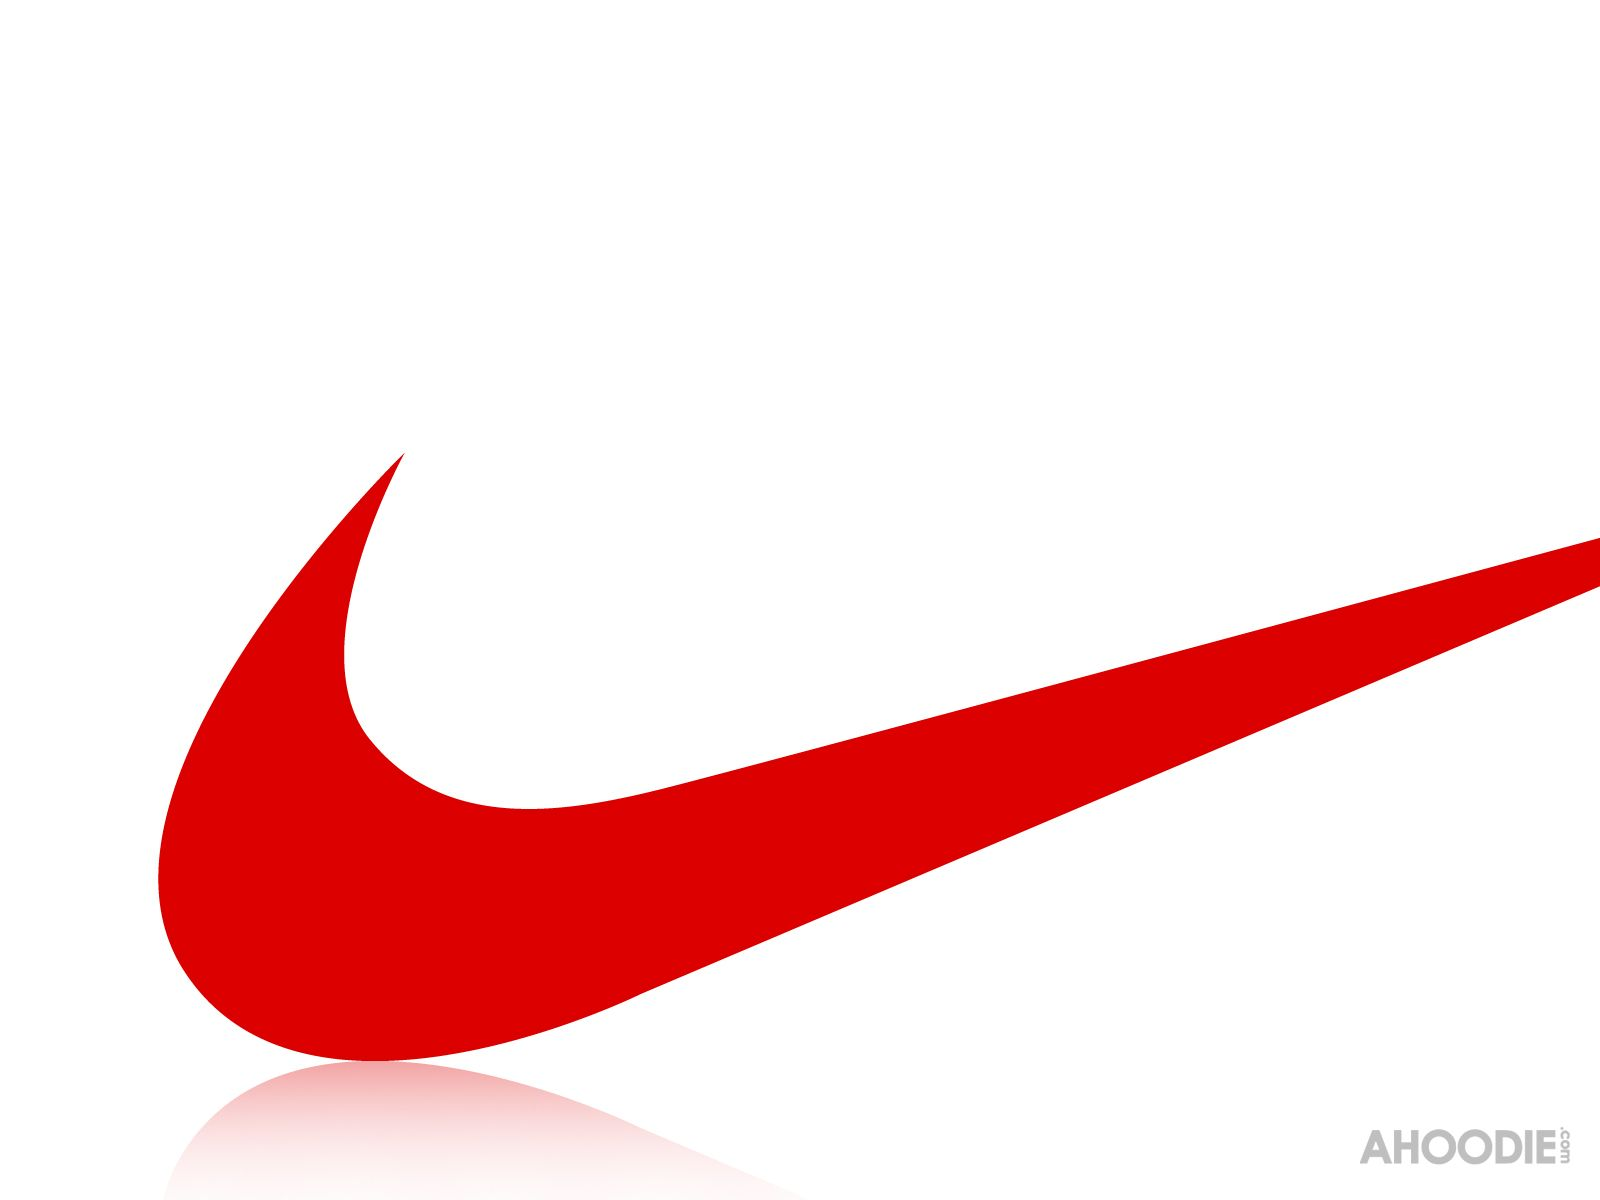 Cool dubsmash ideas - Nike Has One Of The Most Popular Logos The Swoosh Rusty Poe